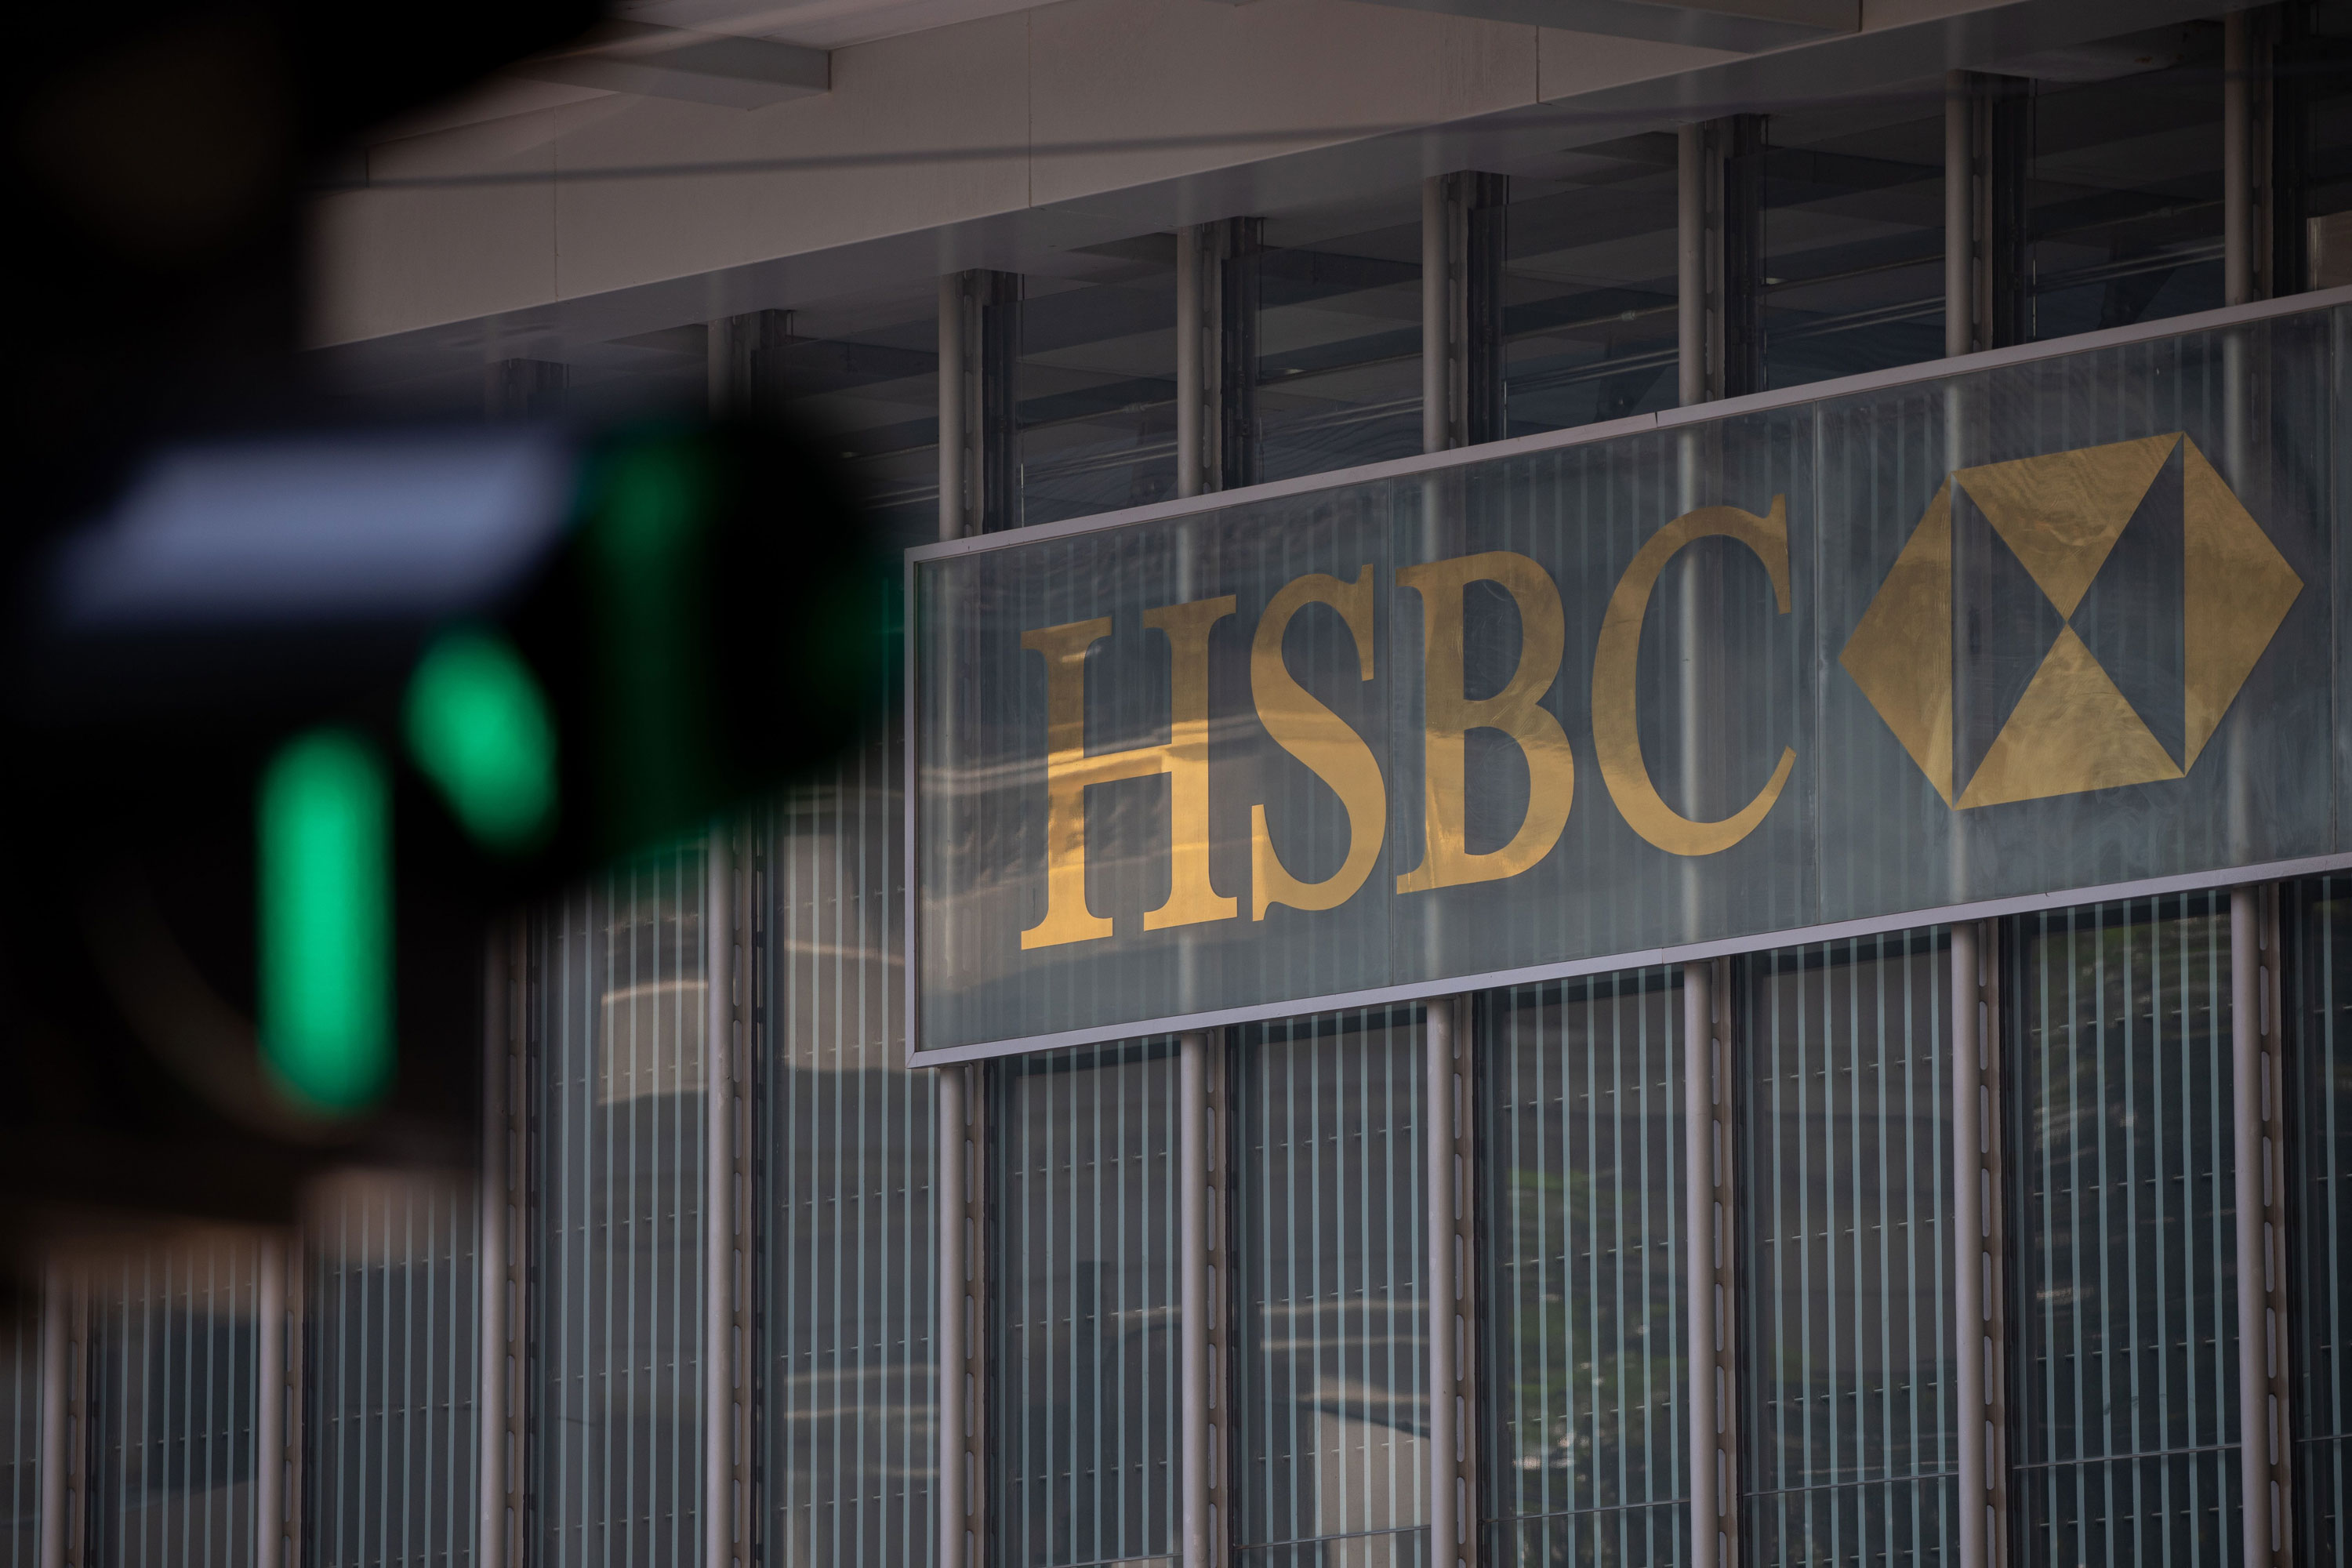 HSBC is pushing even harder into China and India